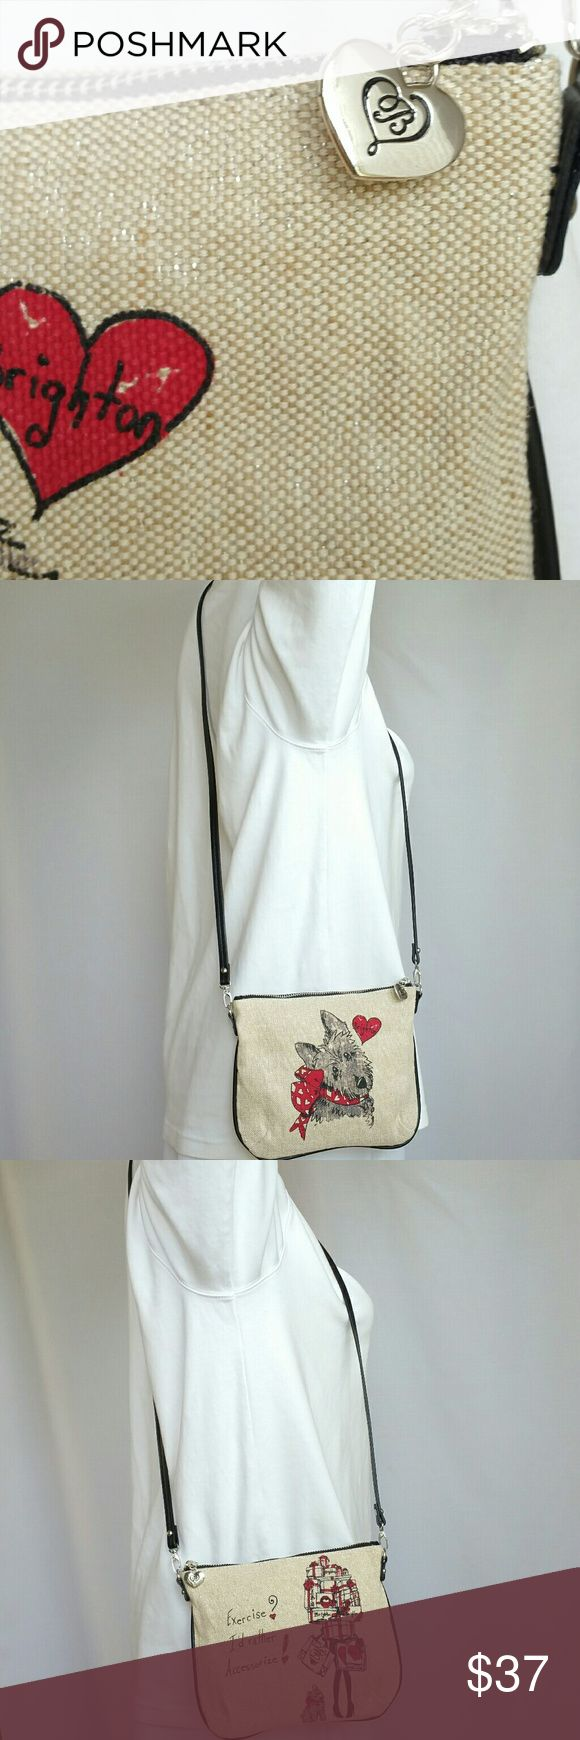 """NWOT Brighton Textured X-Body NWOT! Brighton X-Body in earth tone color palate. TEXTURED! Cream tan black red gray. This bag is a conversation piece. Leather X- ody strap silver tone hardware  top zip Signature Brighton heart hangtag close. Terrior @ front center w/ sad puppy dog eyes that say, """"don't leave me Mom & Dad"""" eyes and rear states, """"Exercise? I'd rather Accessorize."""" 7.5H 9W 23DROP. Unworn! Brighton Bags Crossbody Bags"""